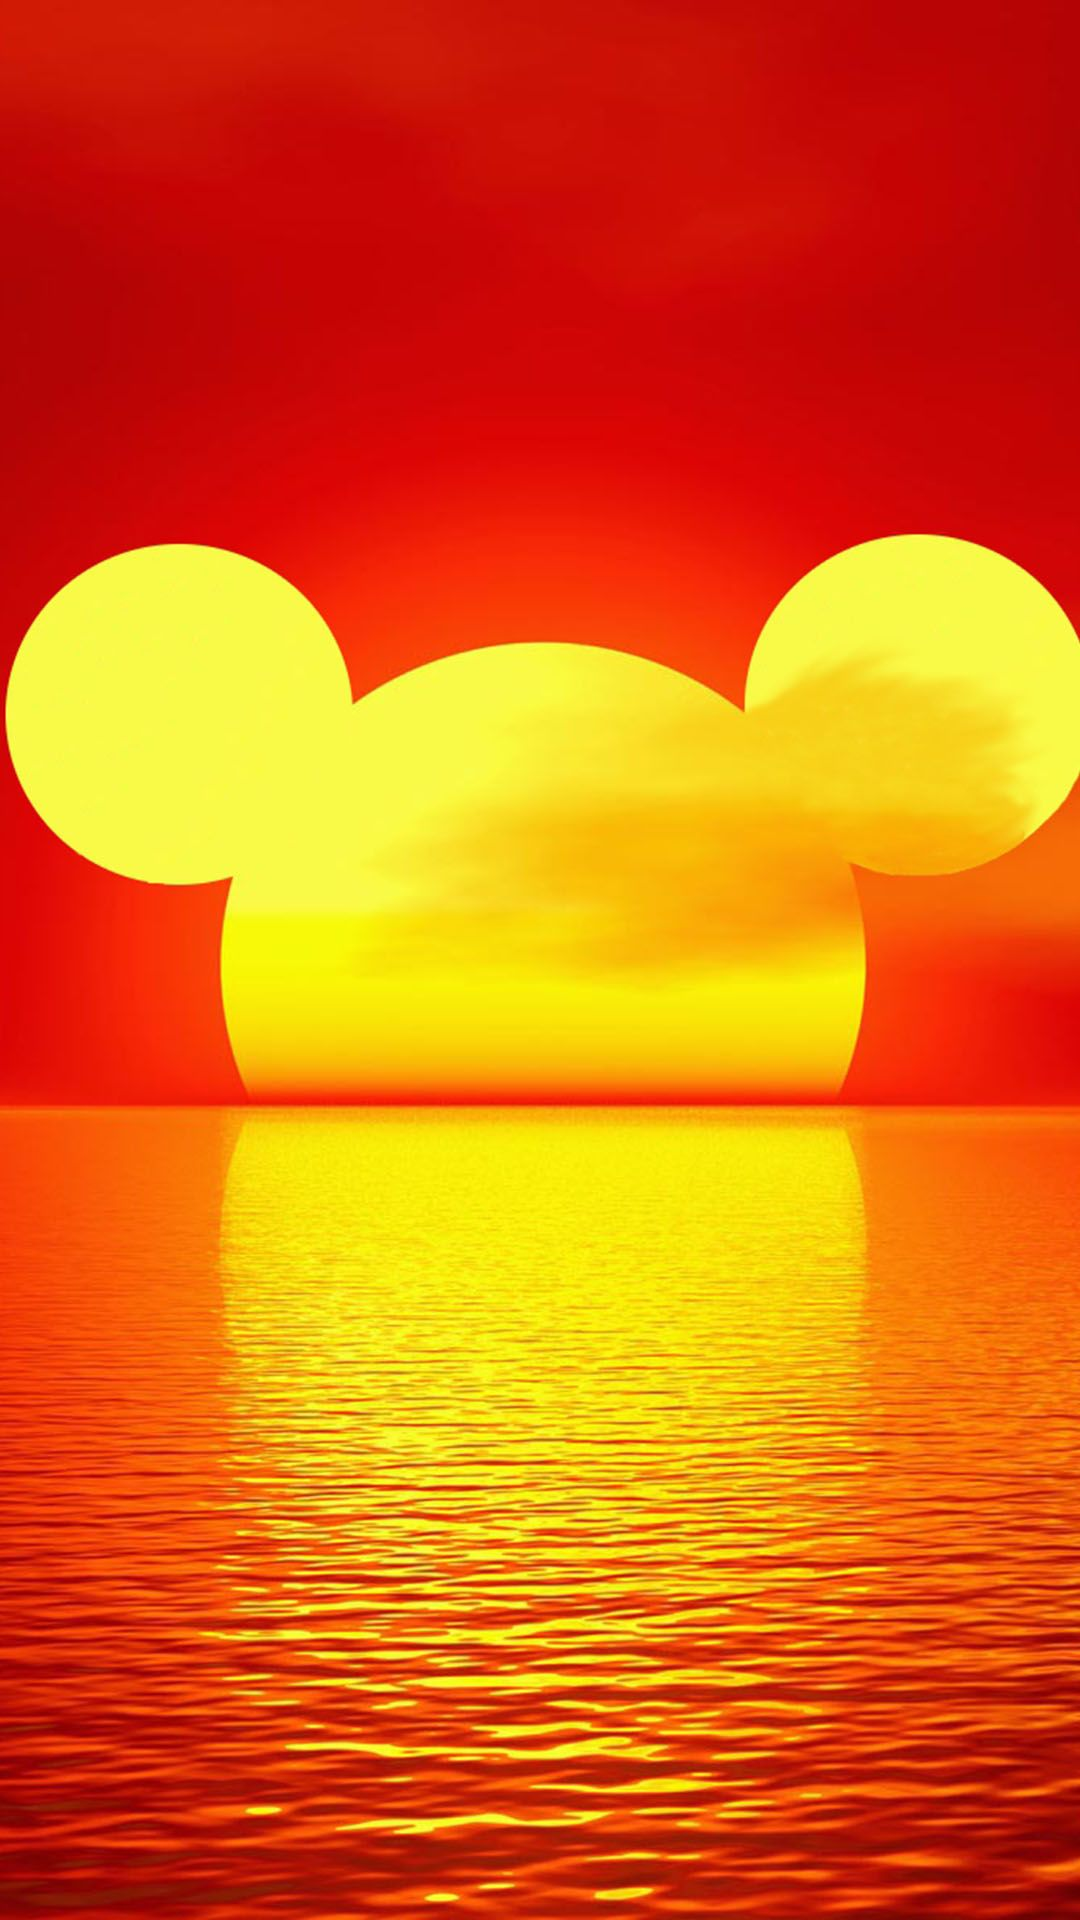 mickey mouse wallpaper iphone 6 plus (4) Minnie papel de